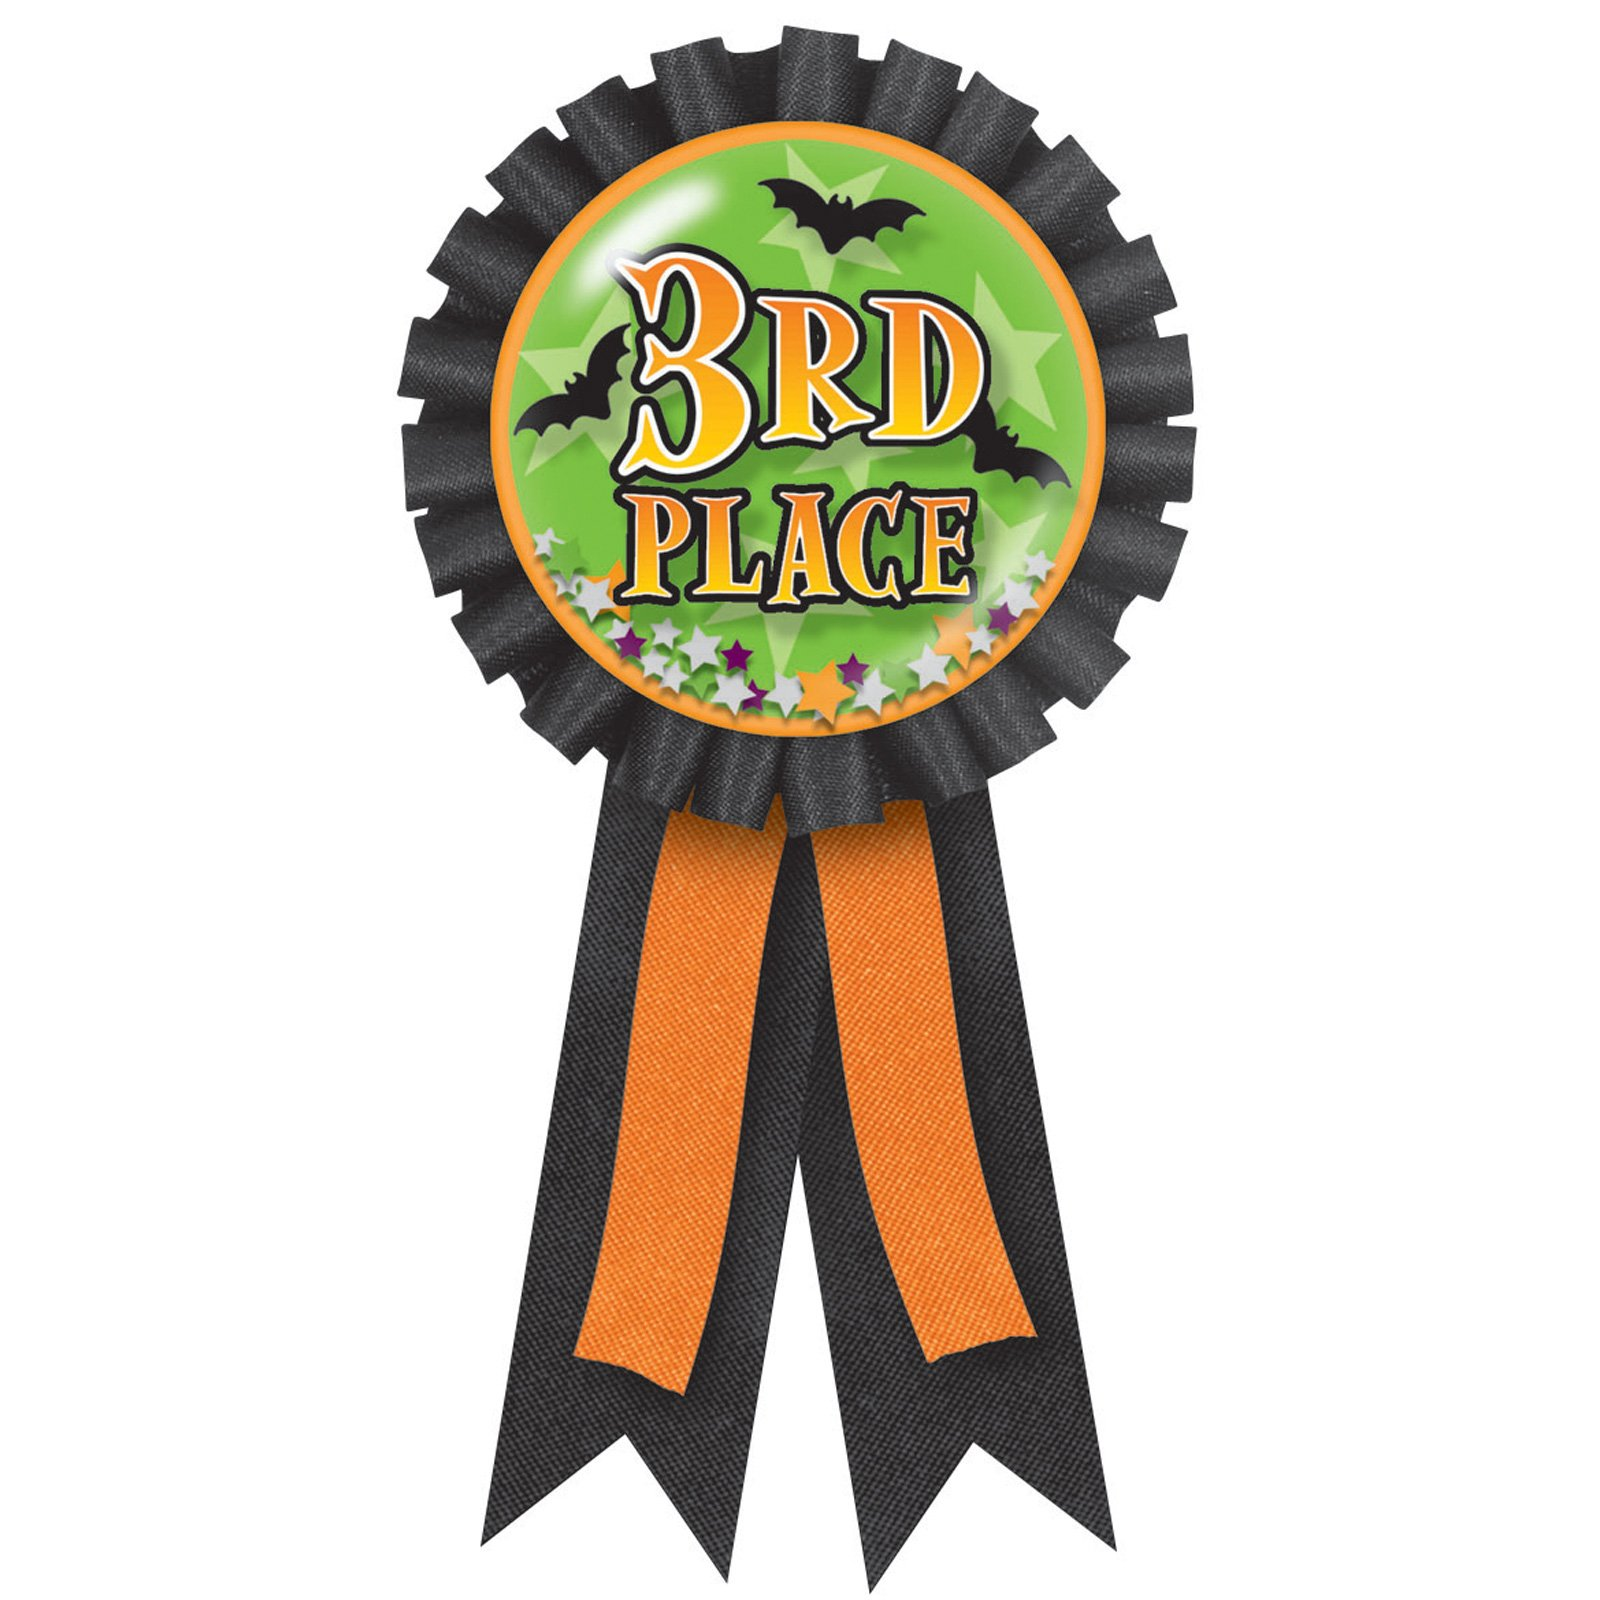 3rd Place Clip Art Http   Www Keywordpicture Com Keyword 3rd Place